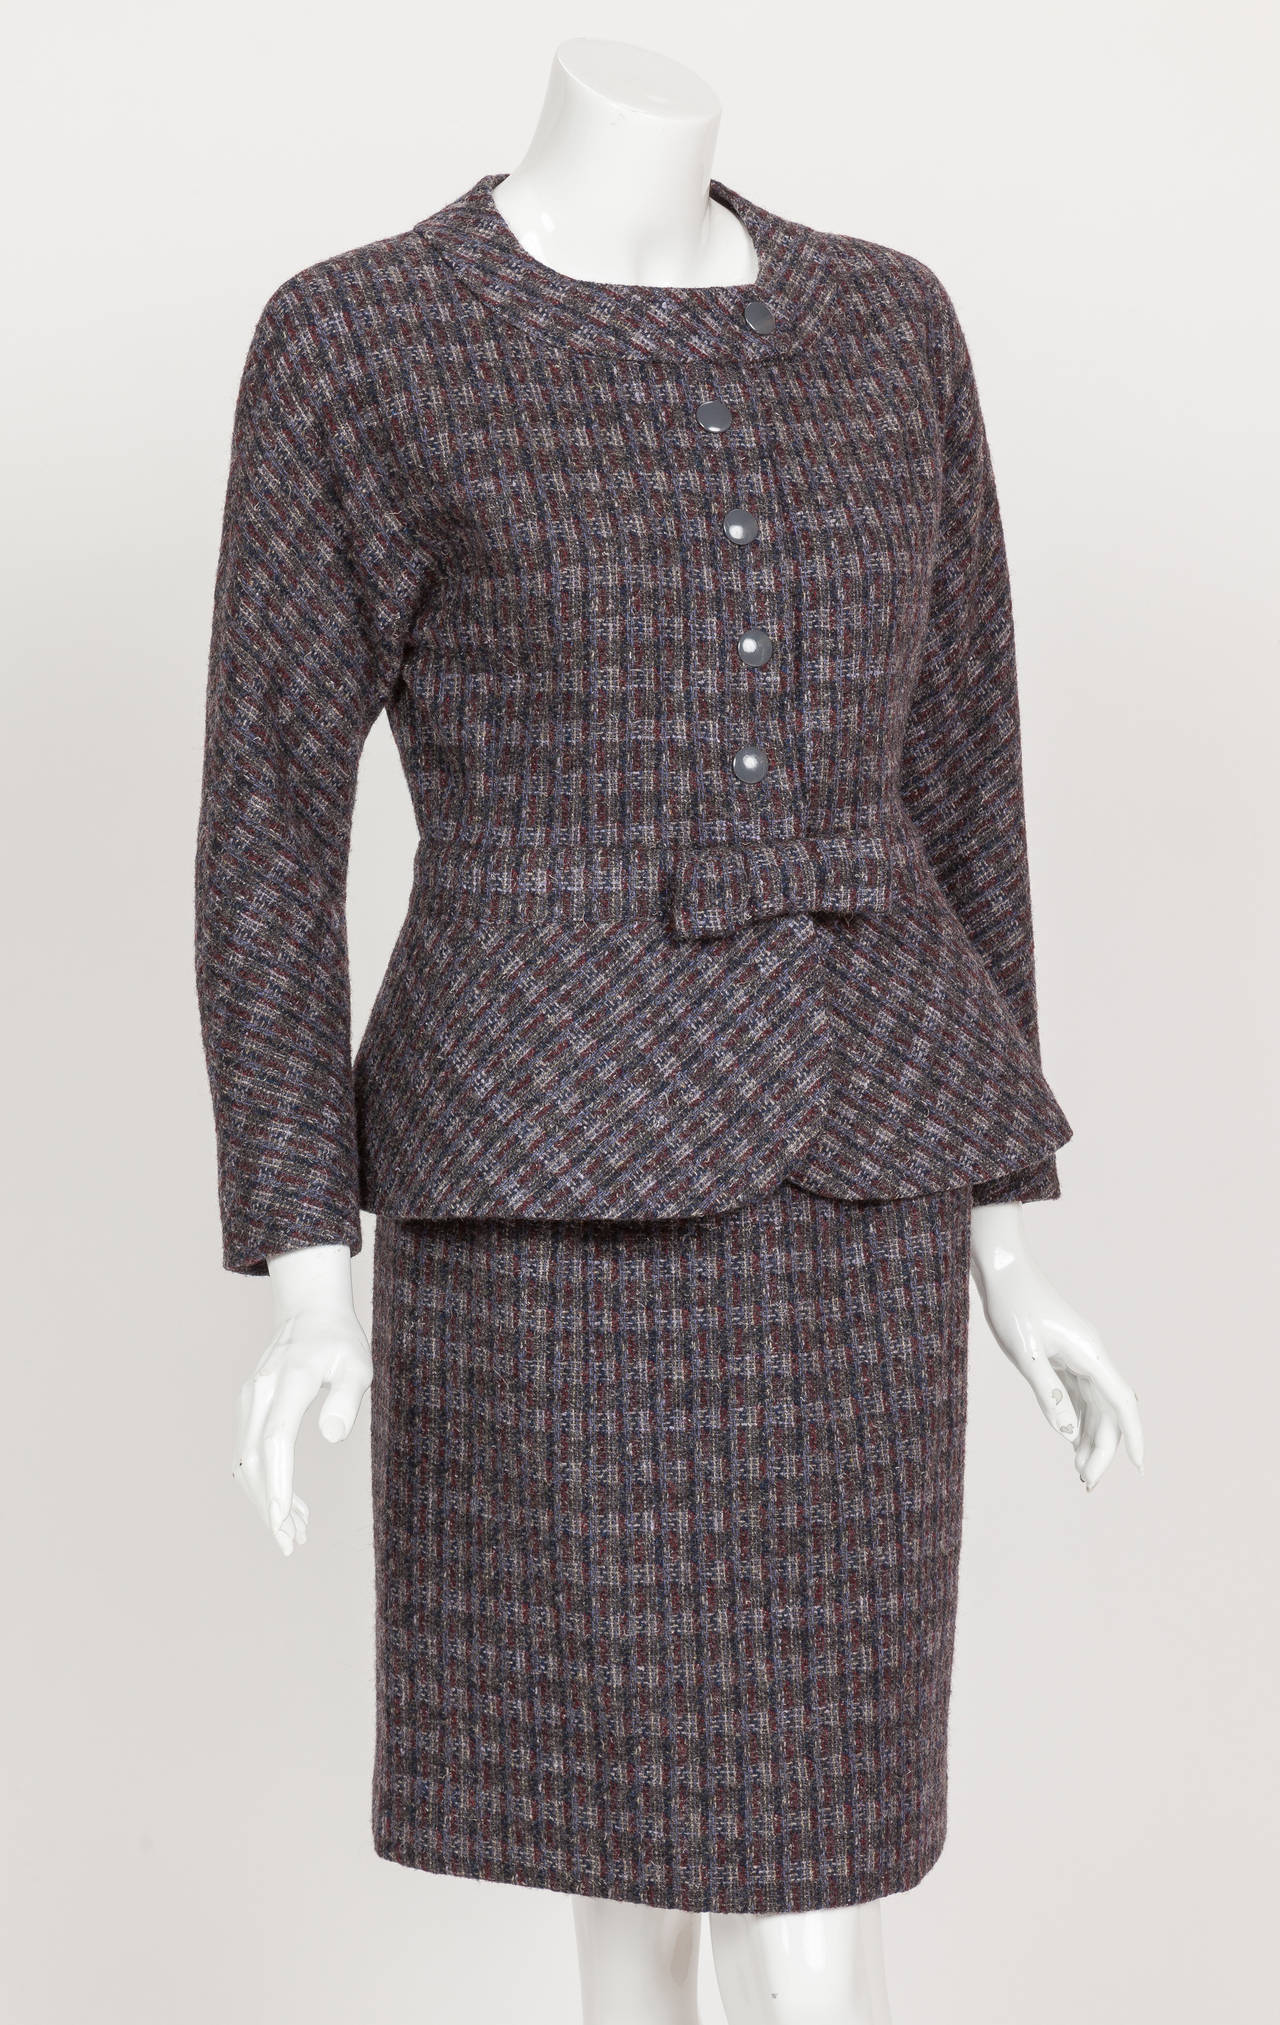 Pierre Cardin Tweed Jacket and Skirt Ensemble Suit w/Detachable collar ca. 1982 3